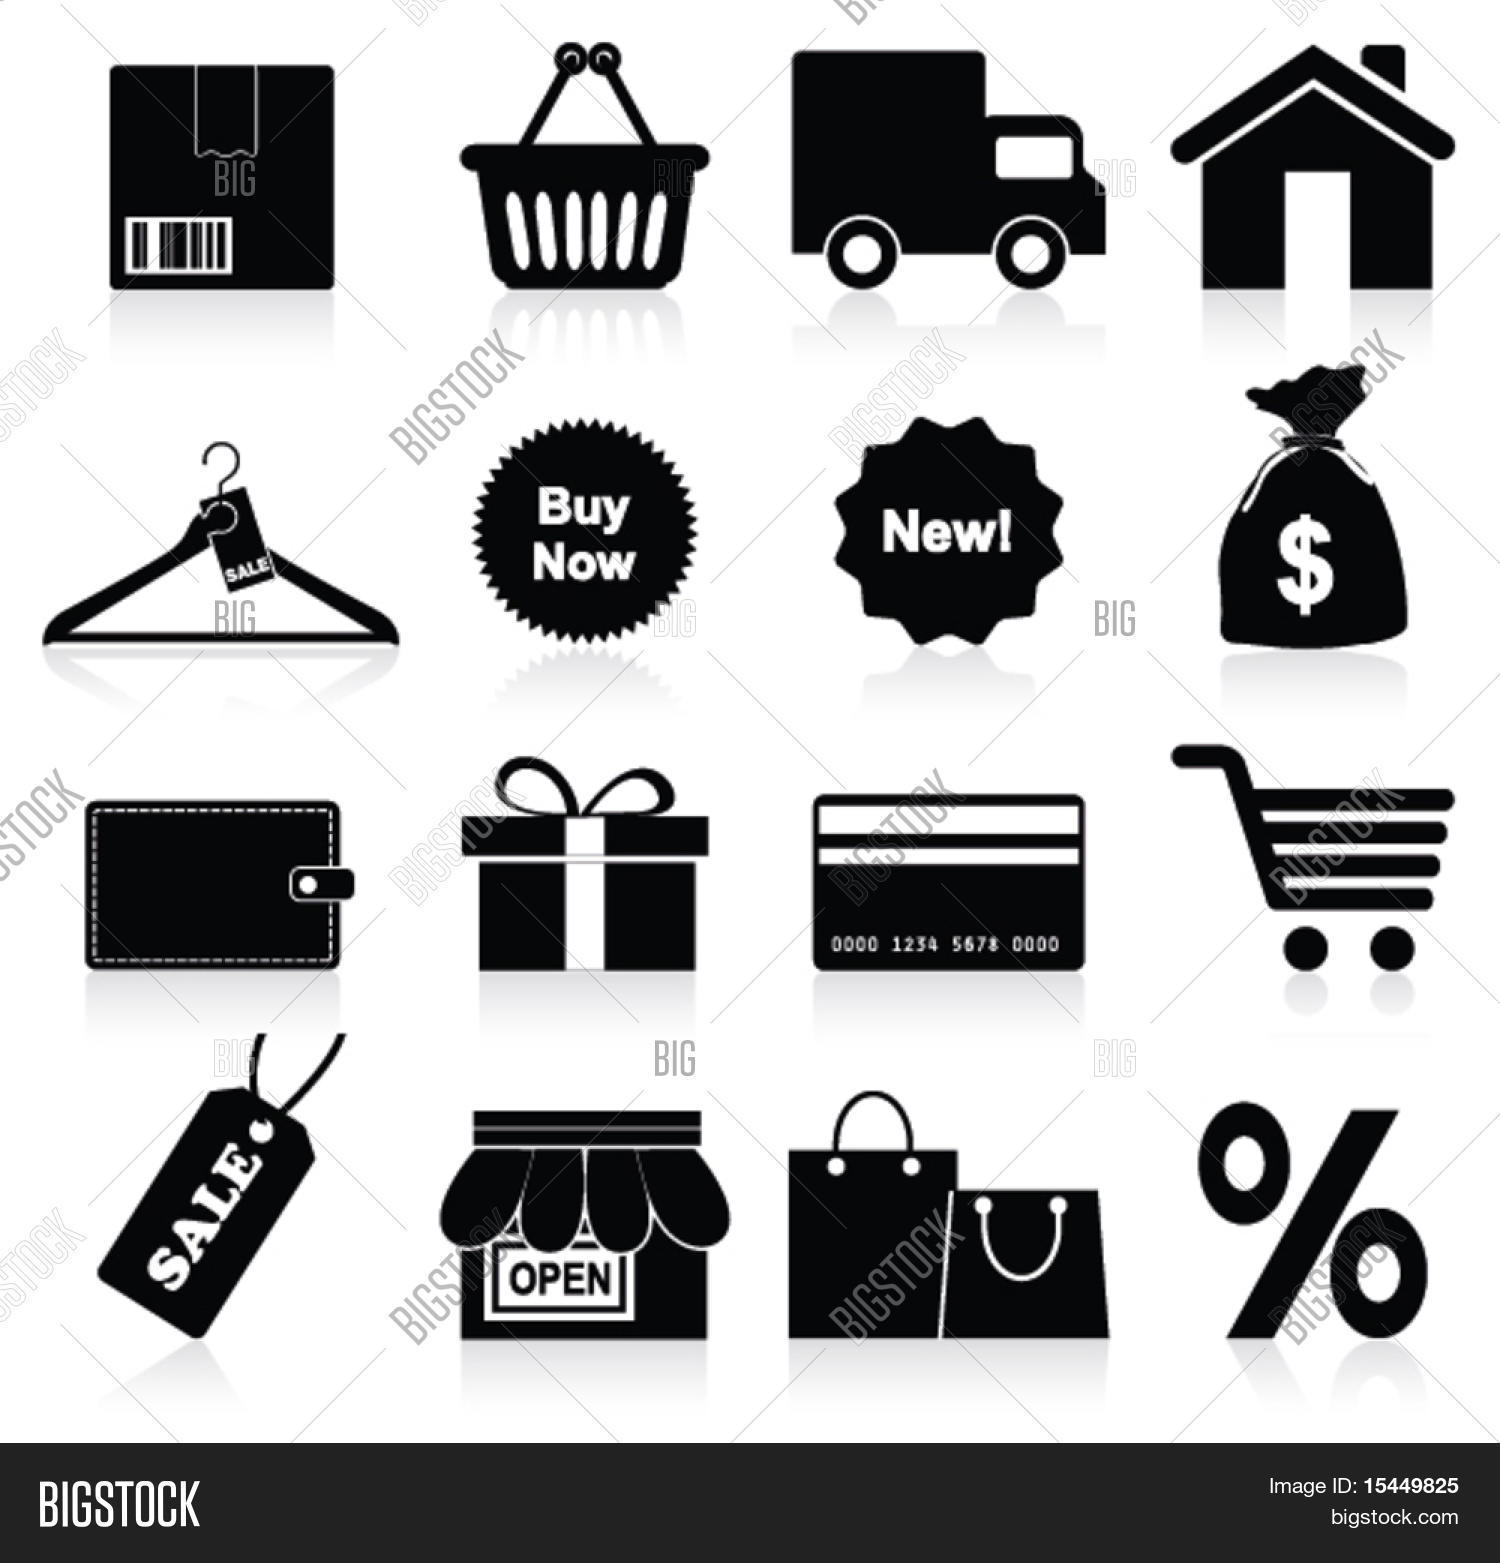 Shopping icon. Vector Stock Vector & Stock Photos | Bigstock